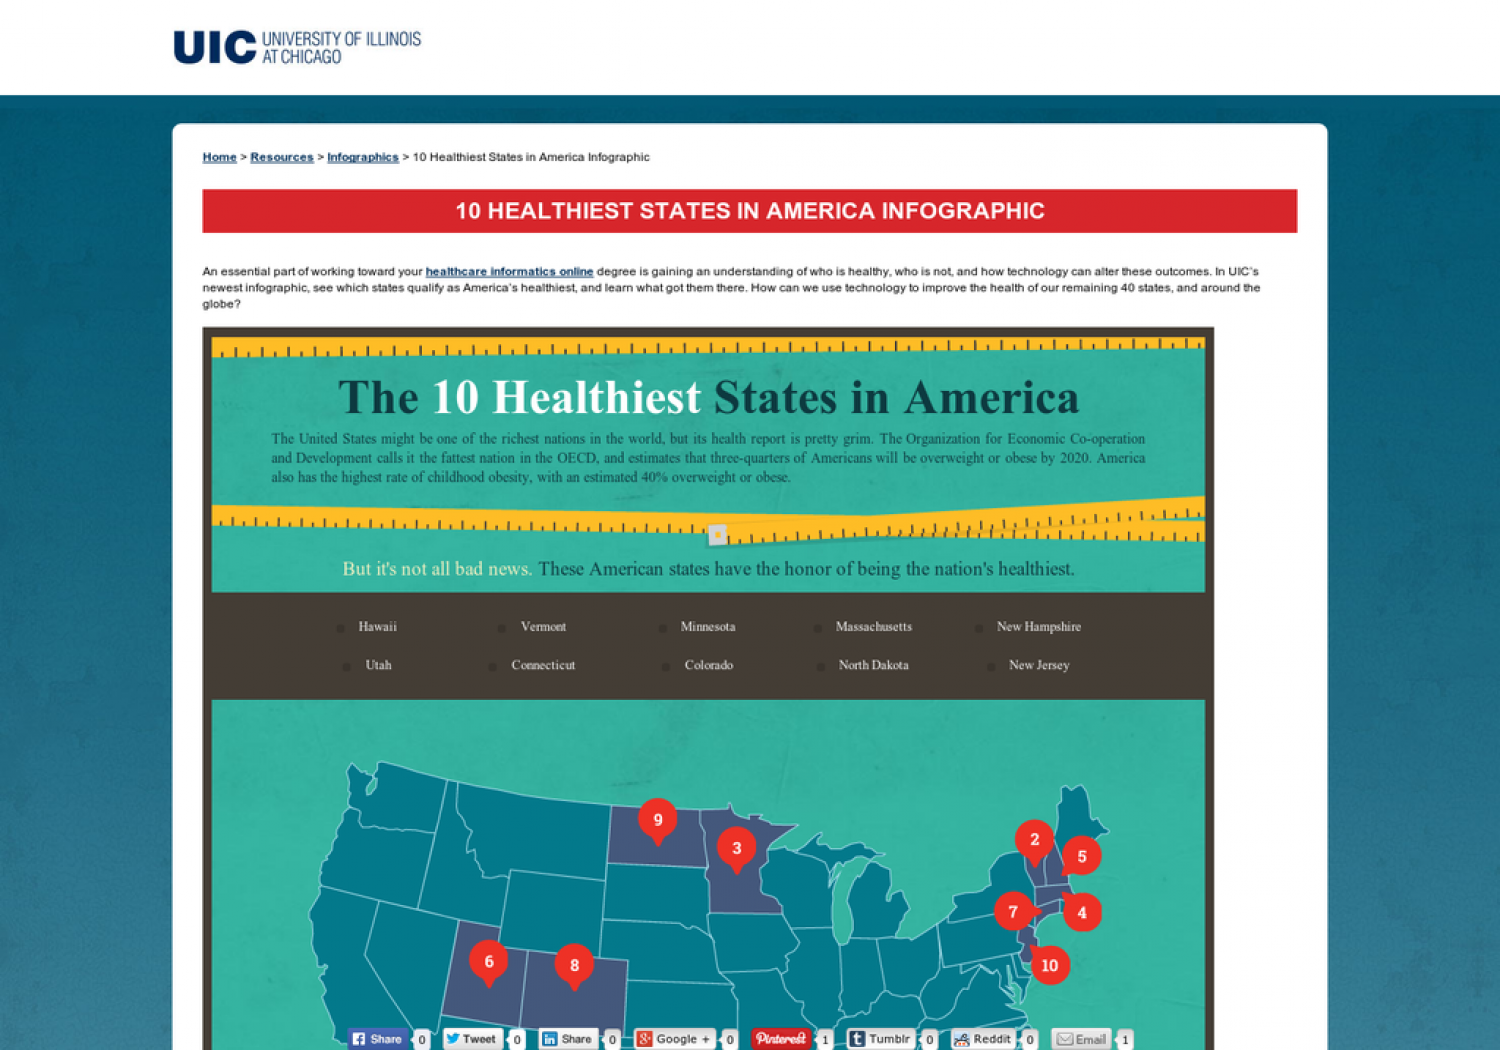 The 10 Healthiest States in America Infographic